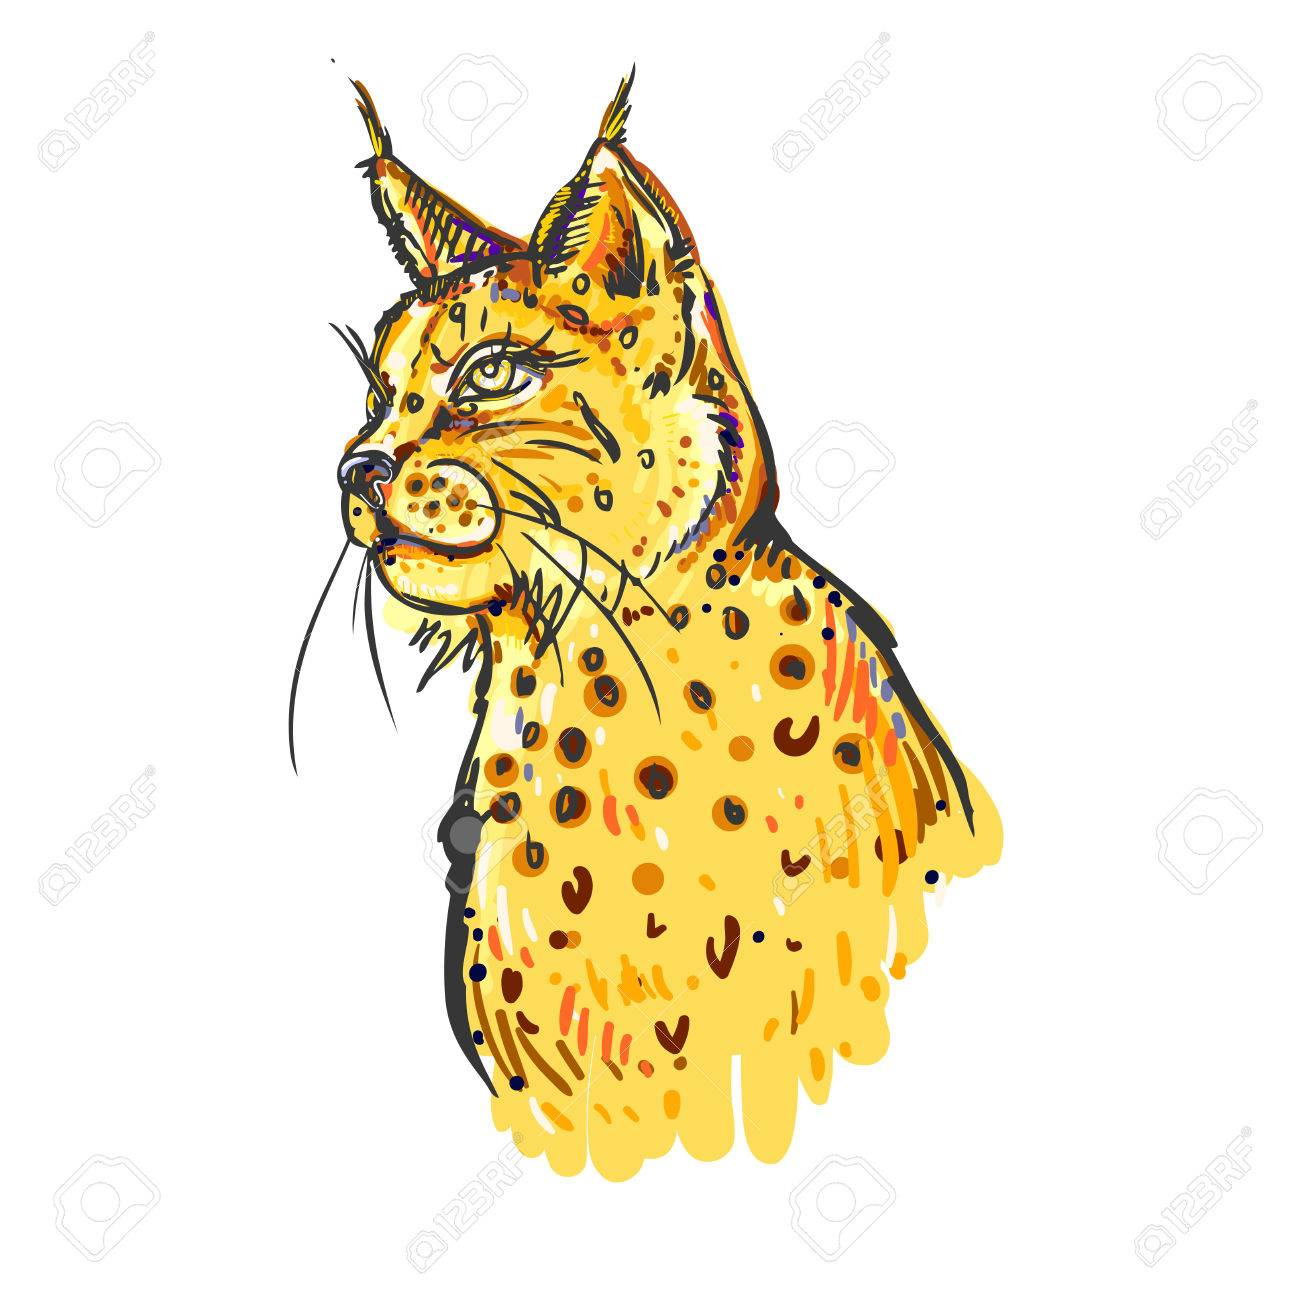 1300x1300 Hand Drawn Color Bobcat On White Background. Design For Poster